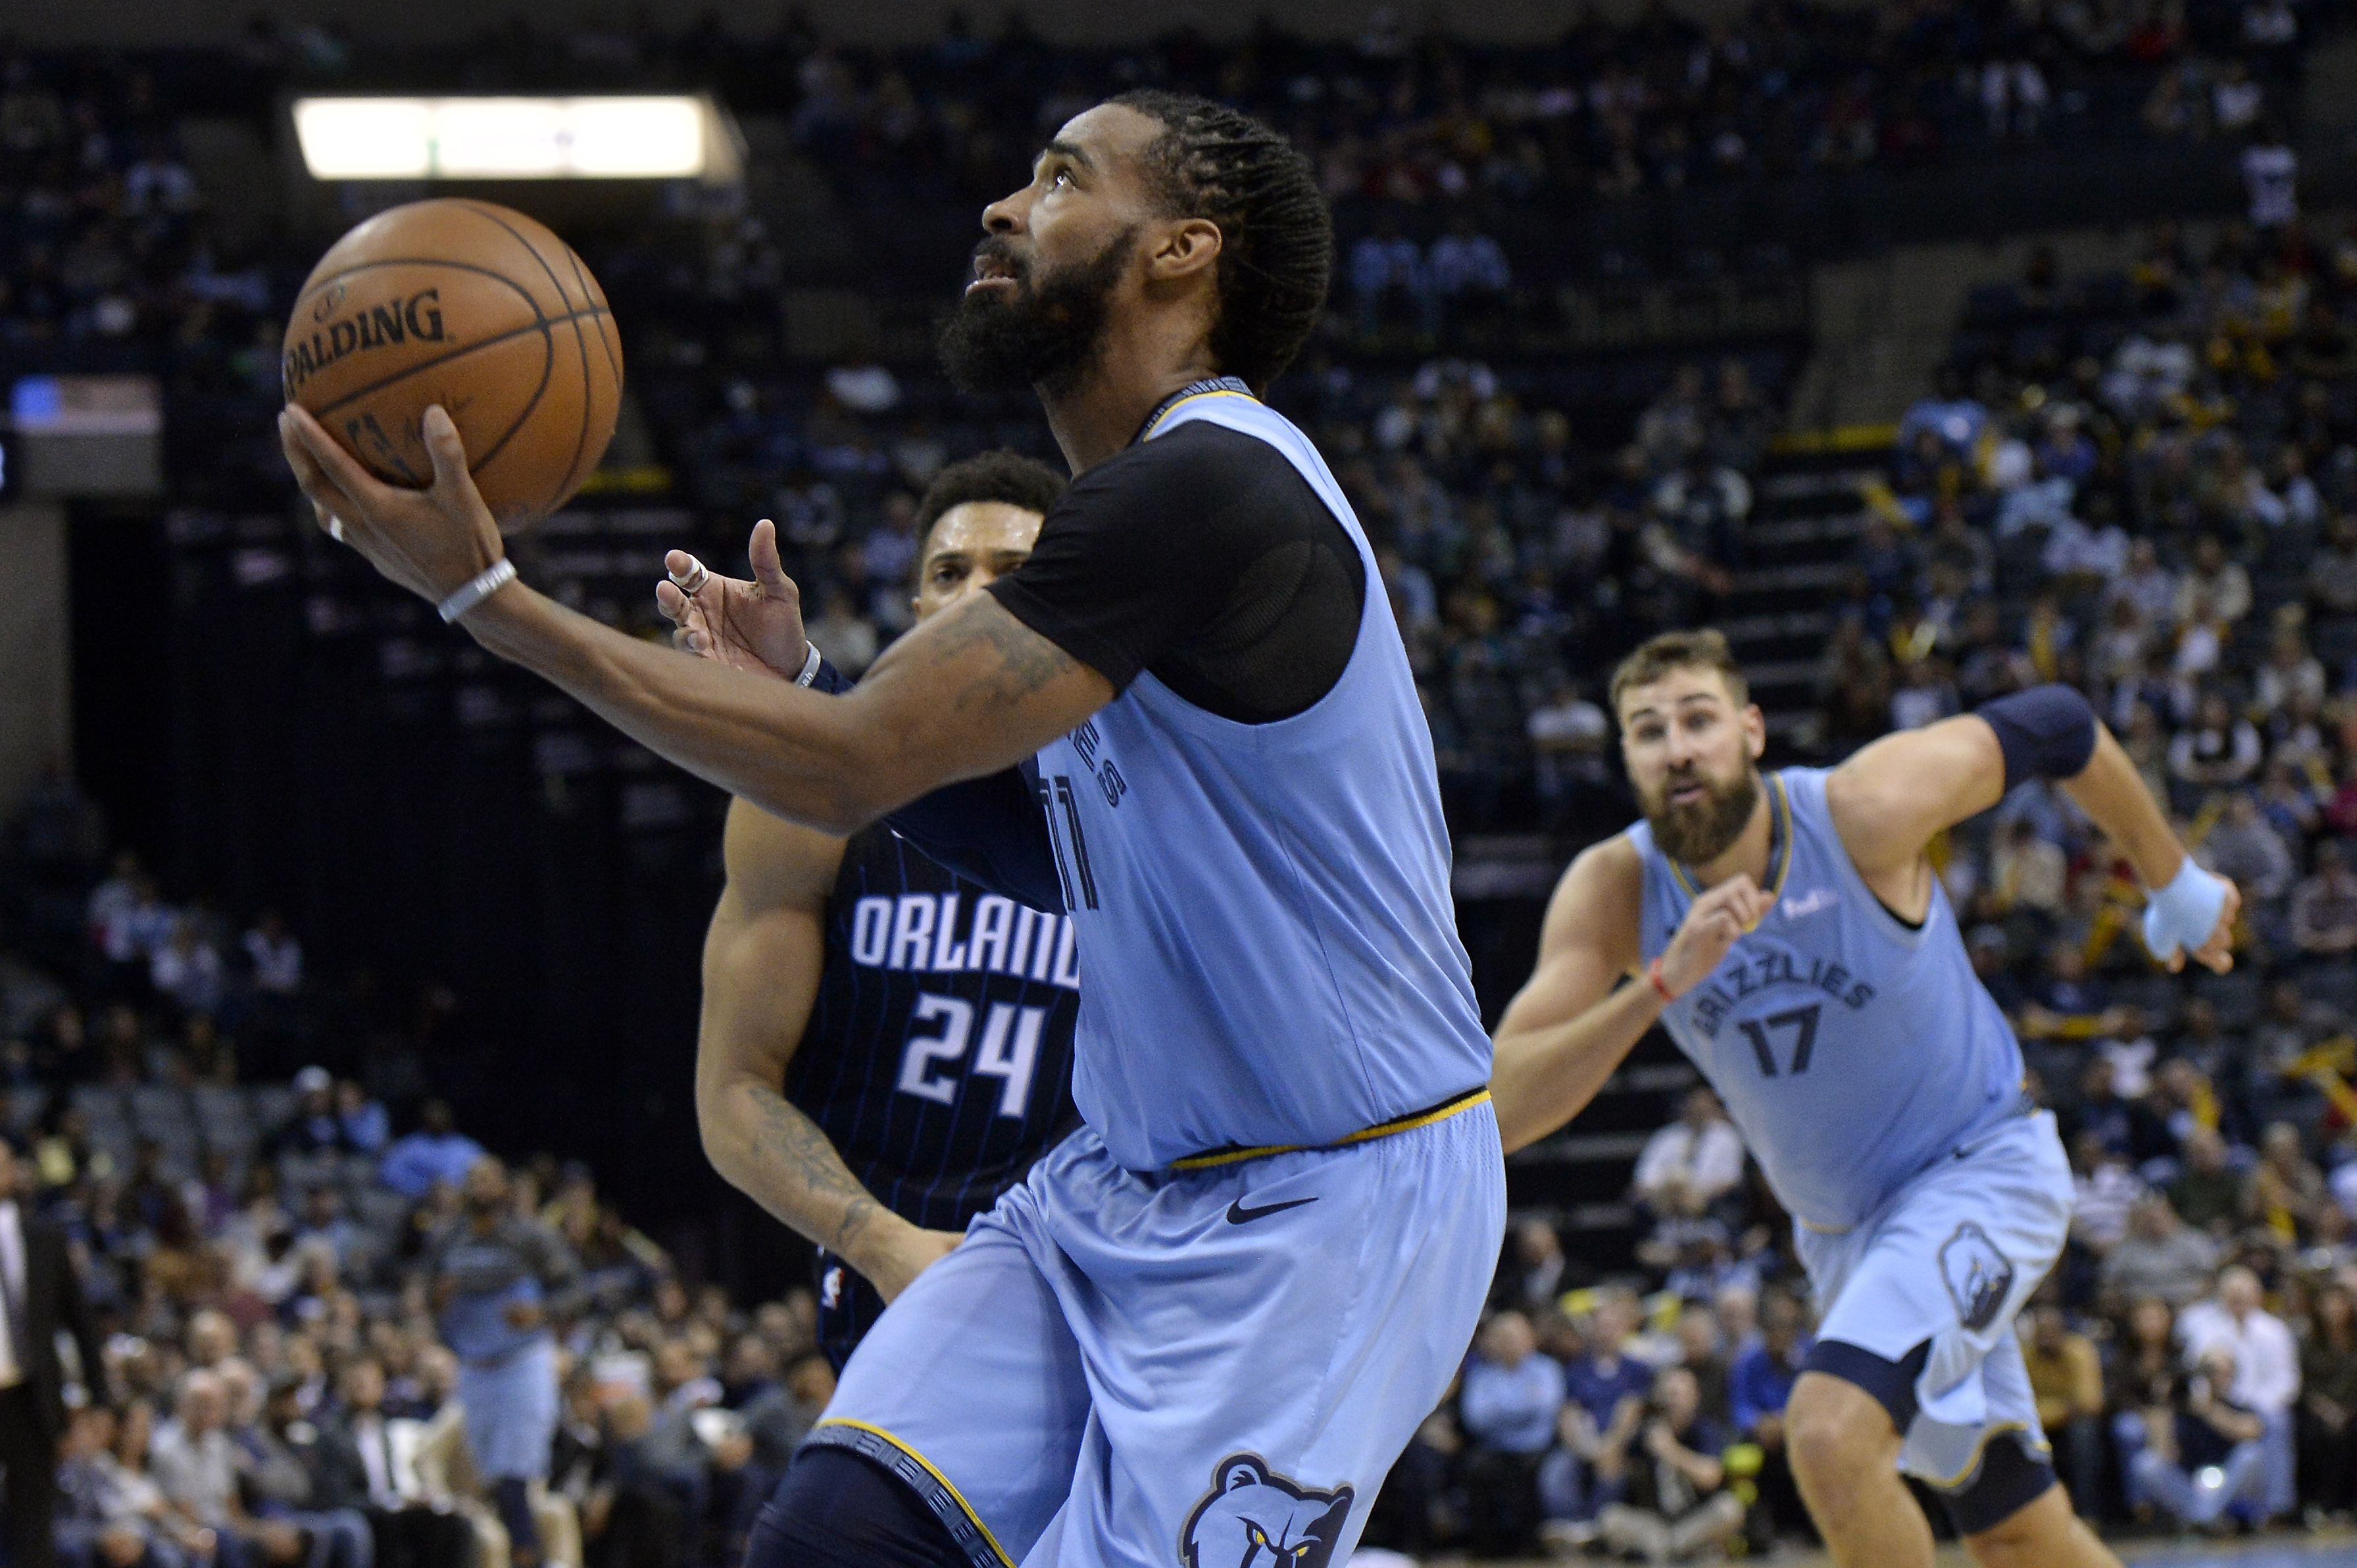 Conley leads the way as Grizzlies rally to beat Magic 105-97